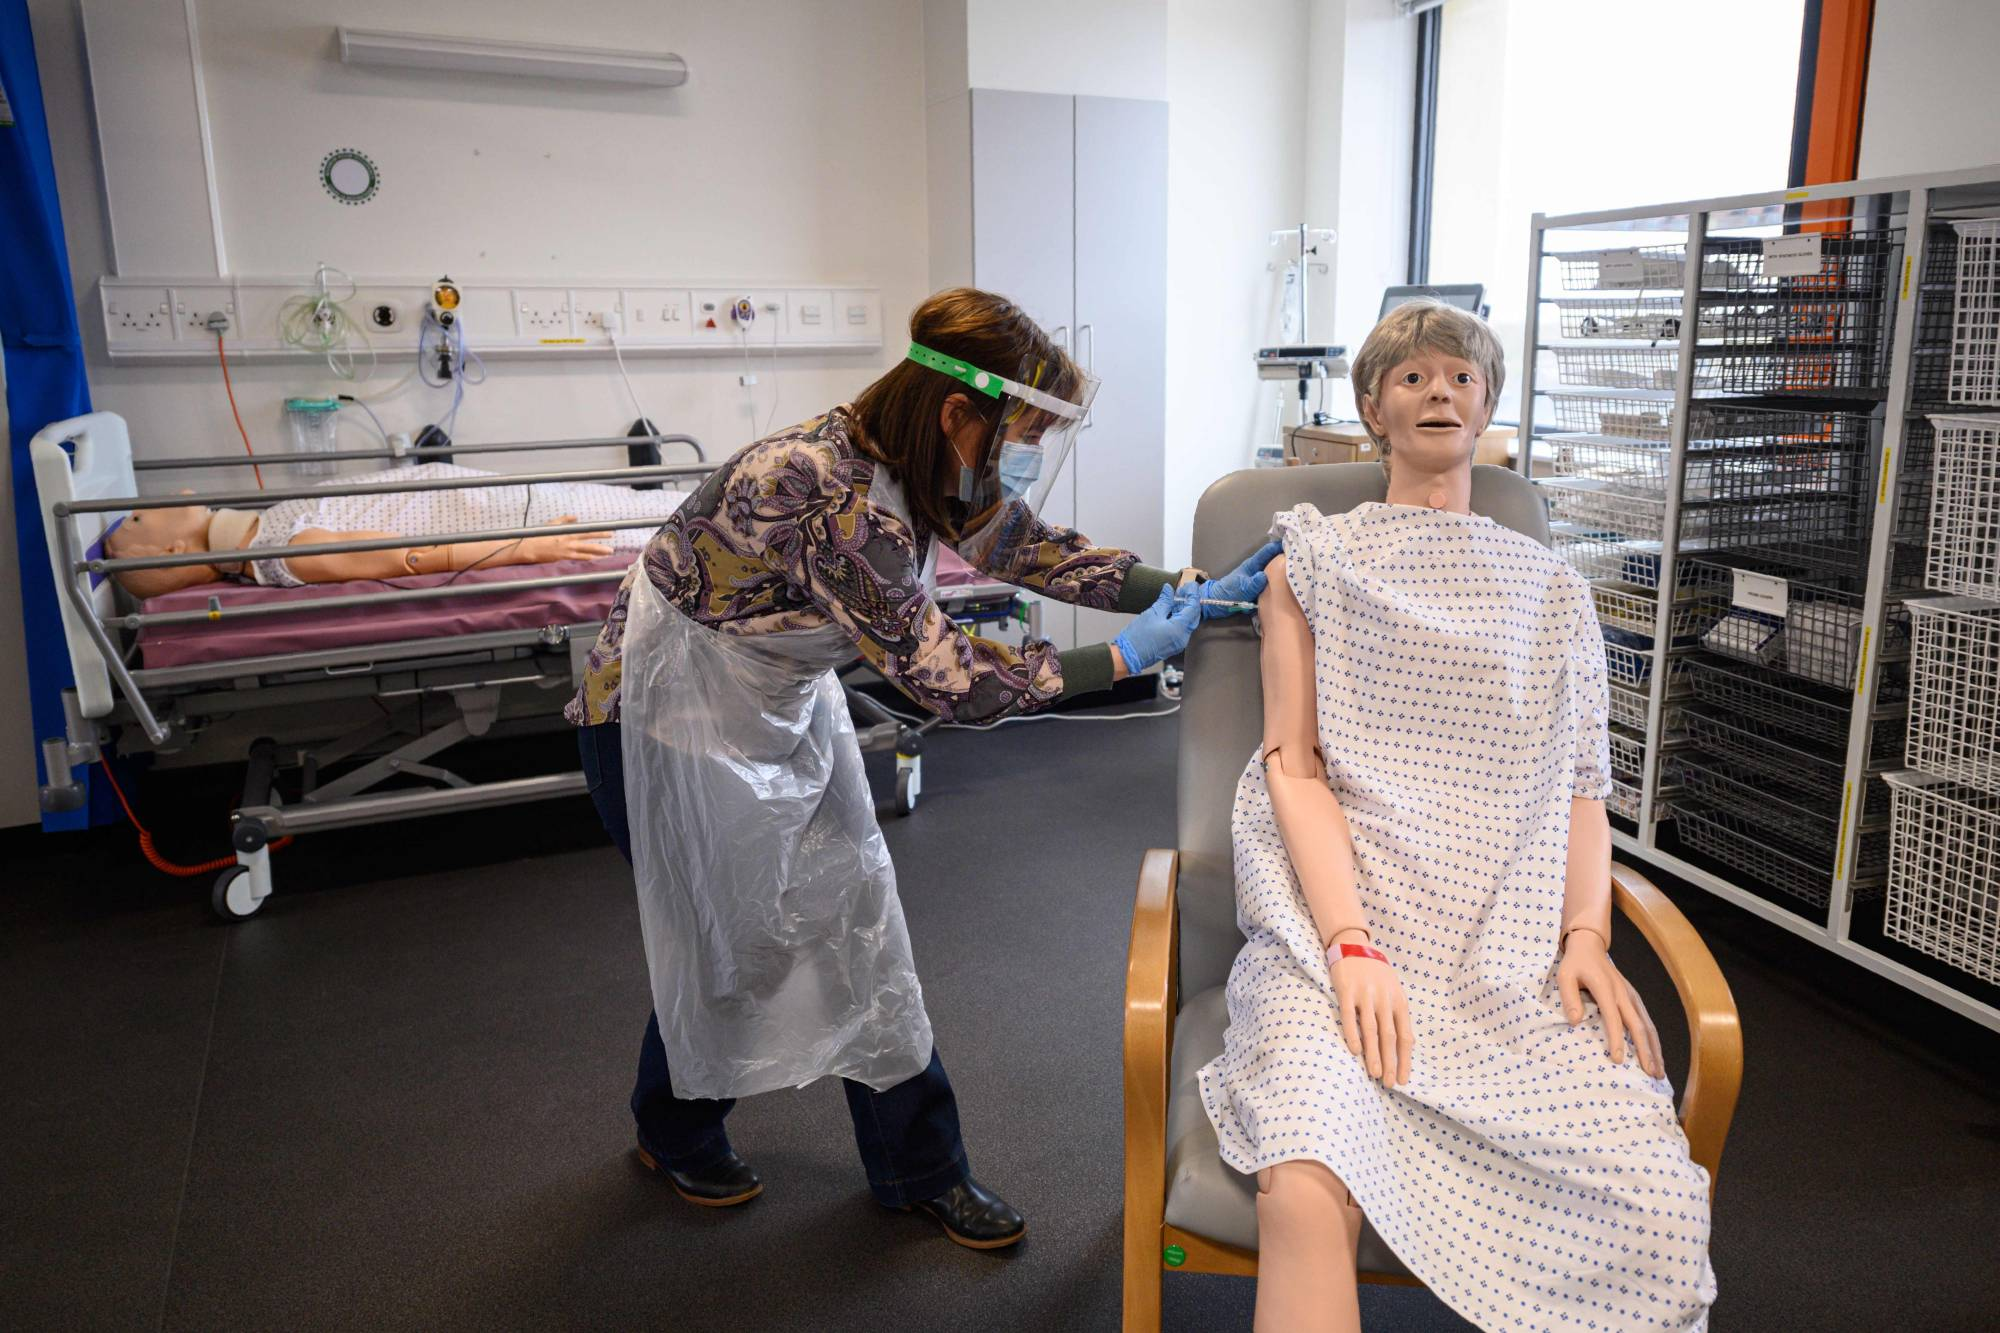 A volunteer practices administering an intramuscular injection with a training model during training to prepare volunteers to be deployed to assist in Britain's COVID-19 vaccination program, in the Allam Medical Building at the University of Hull on Saturday.   AFP-JIJI